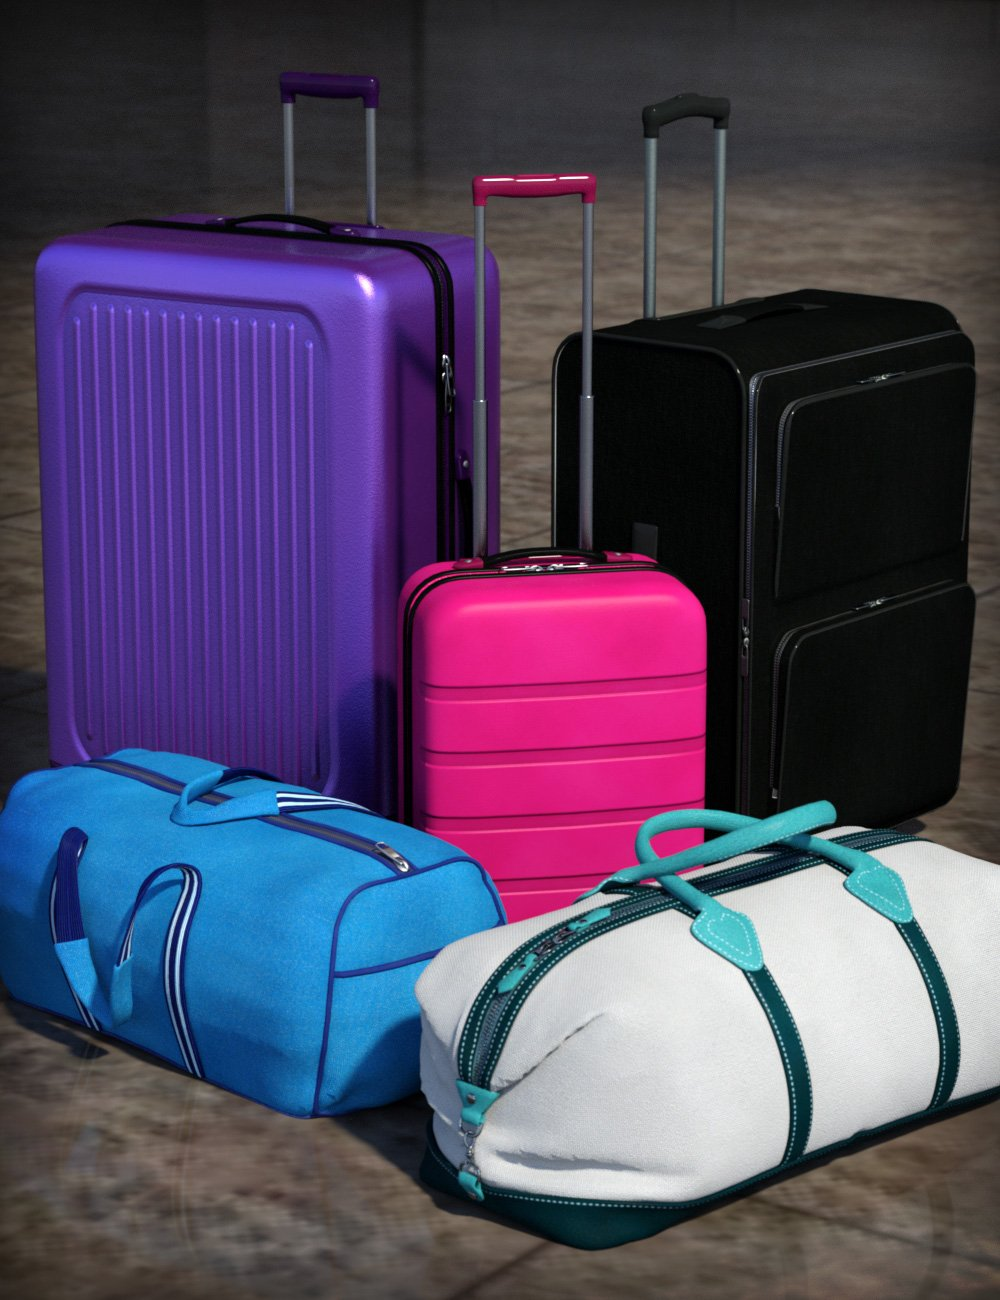 Travel Baggage by: esha, 3D Models by Daz 3D